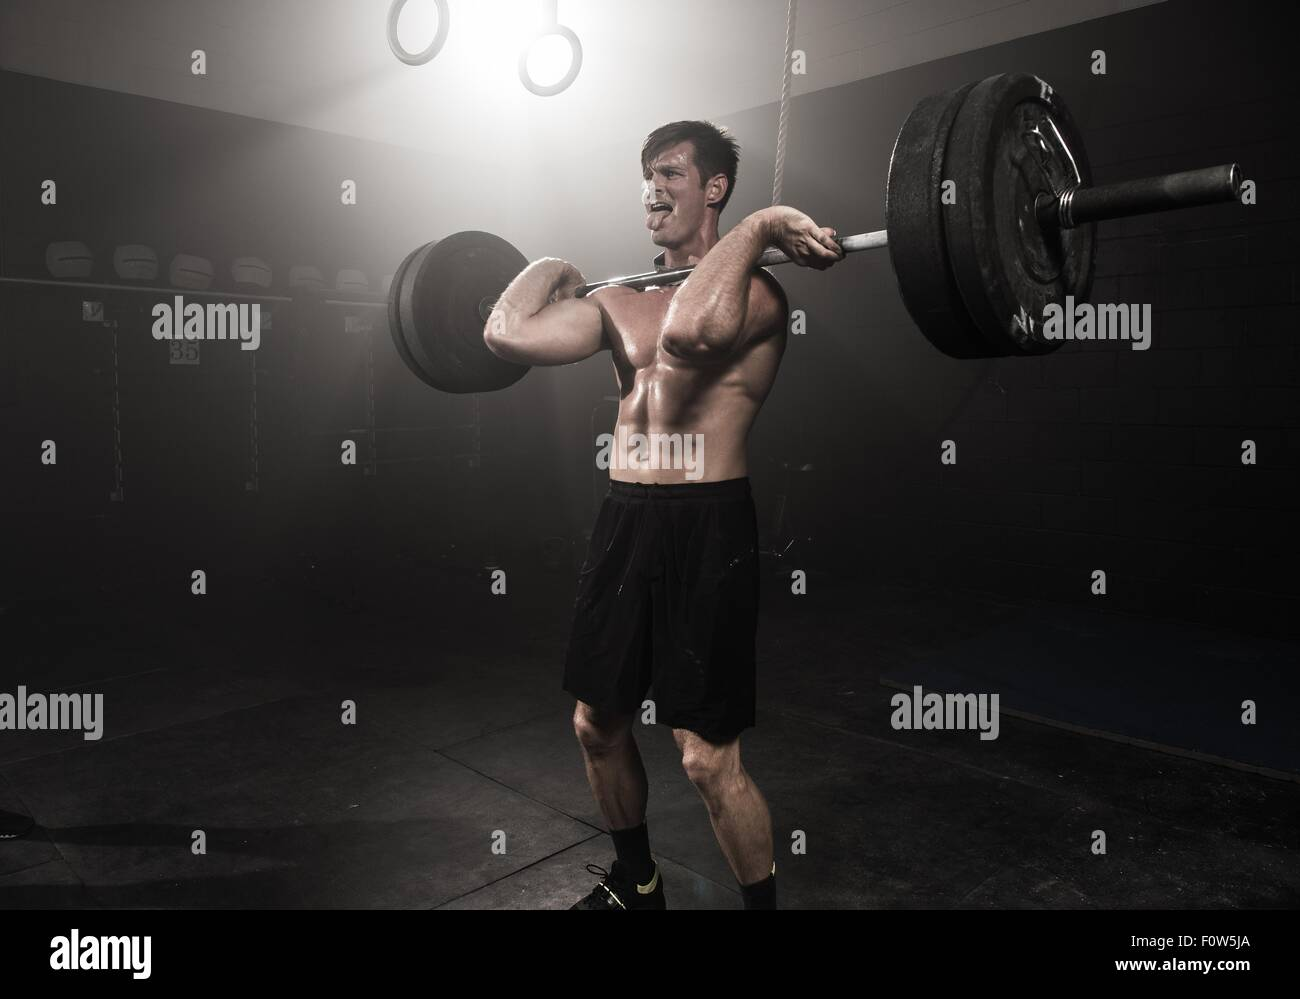 Mid adult man lifting barbell Photo Stock